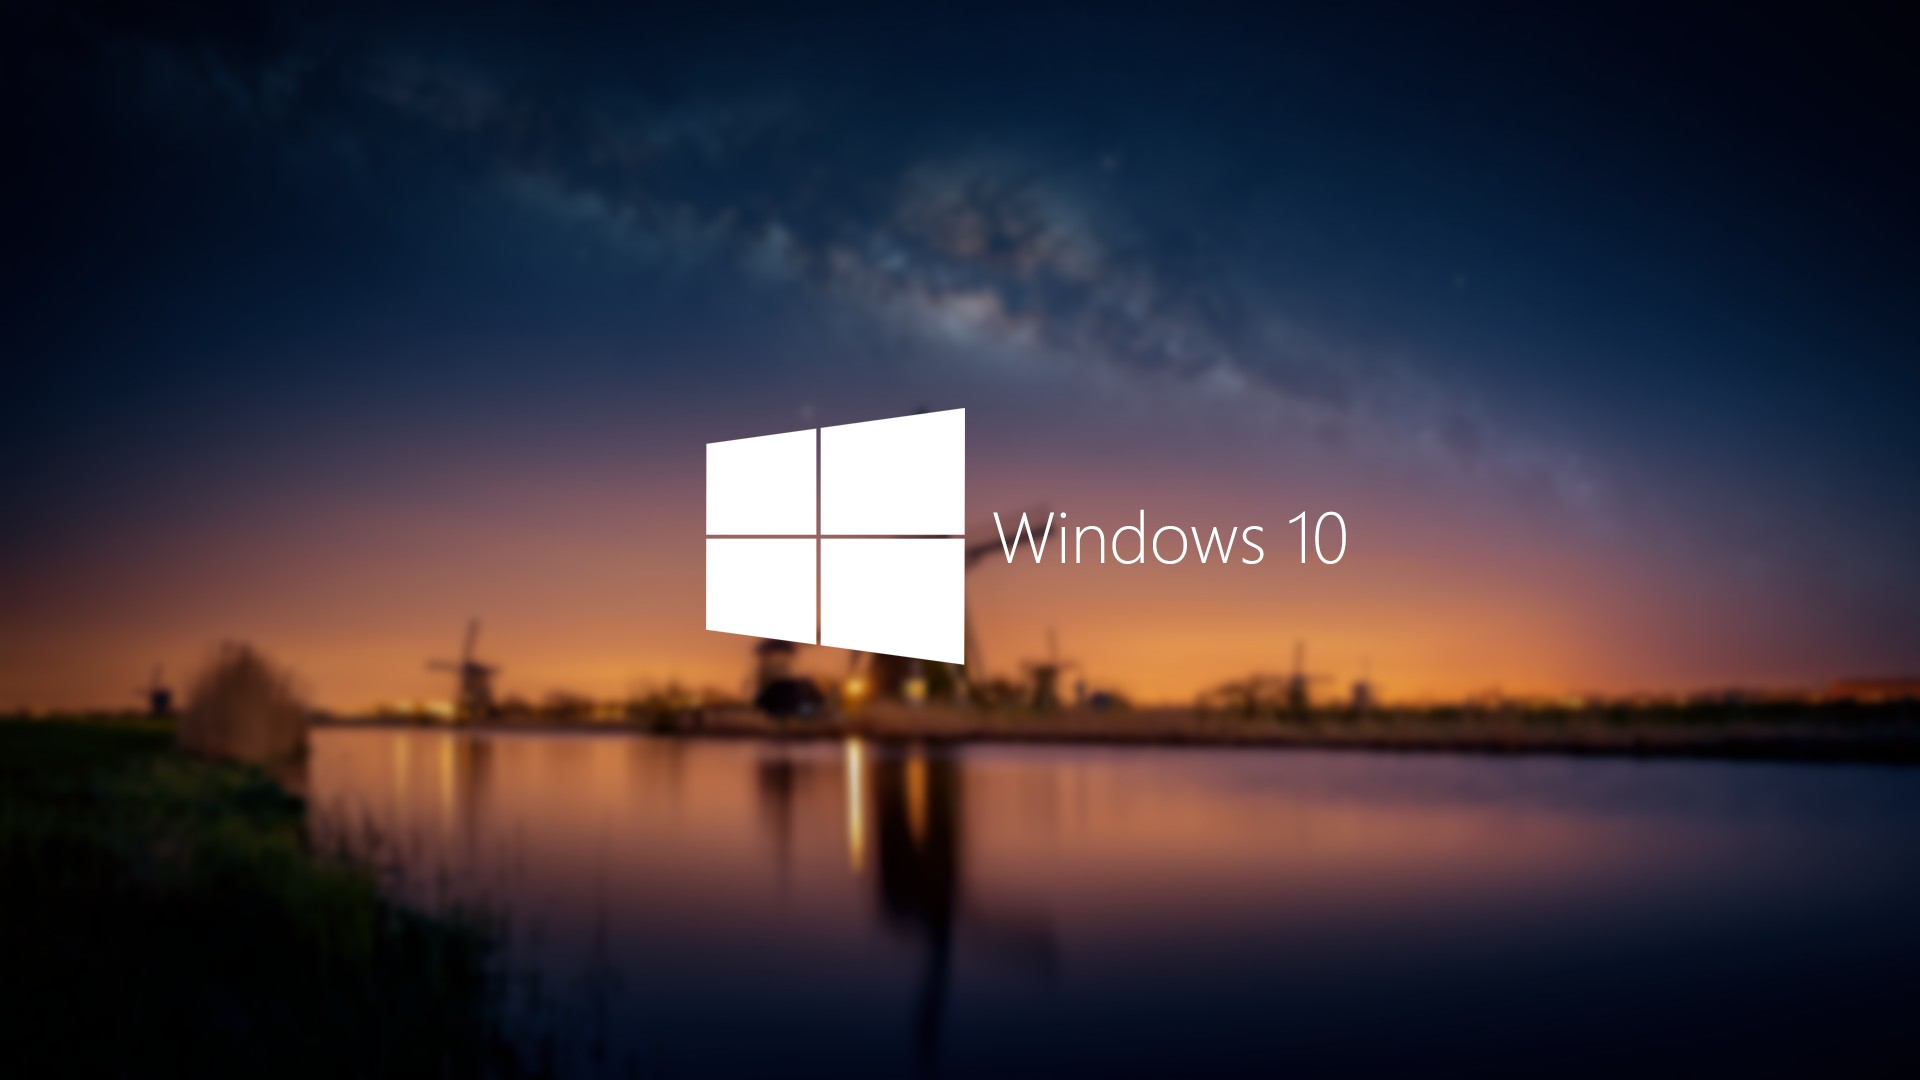 Windows 10 Desktop Wallpaper Download Free Cool Backgrounds For